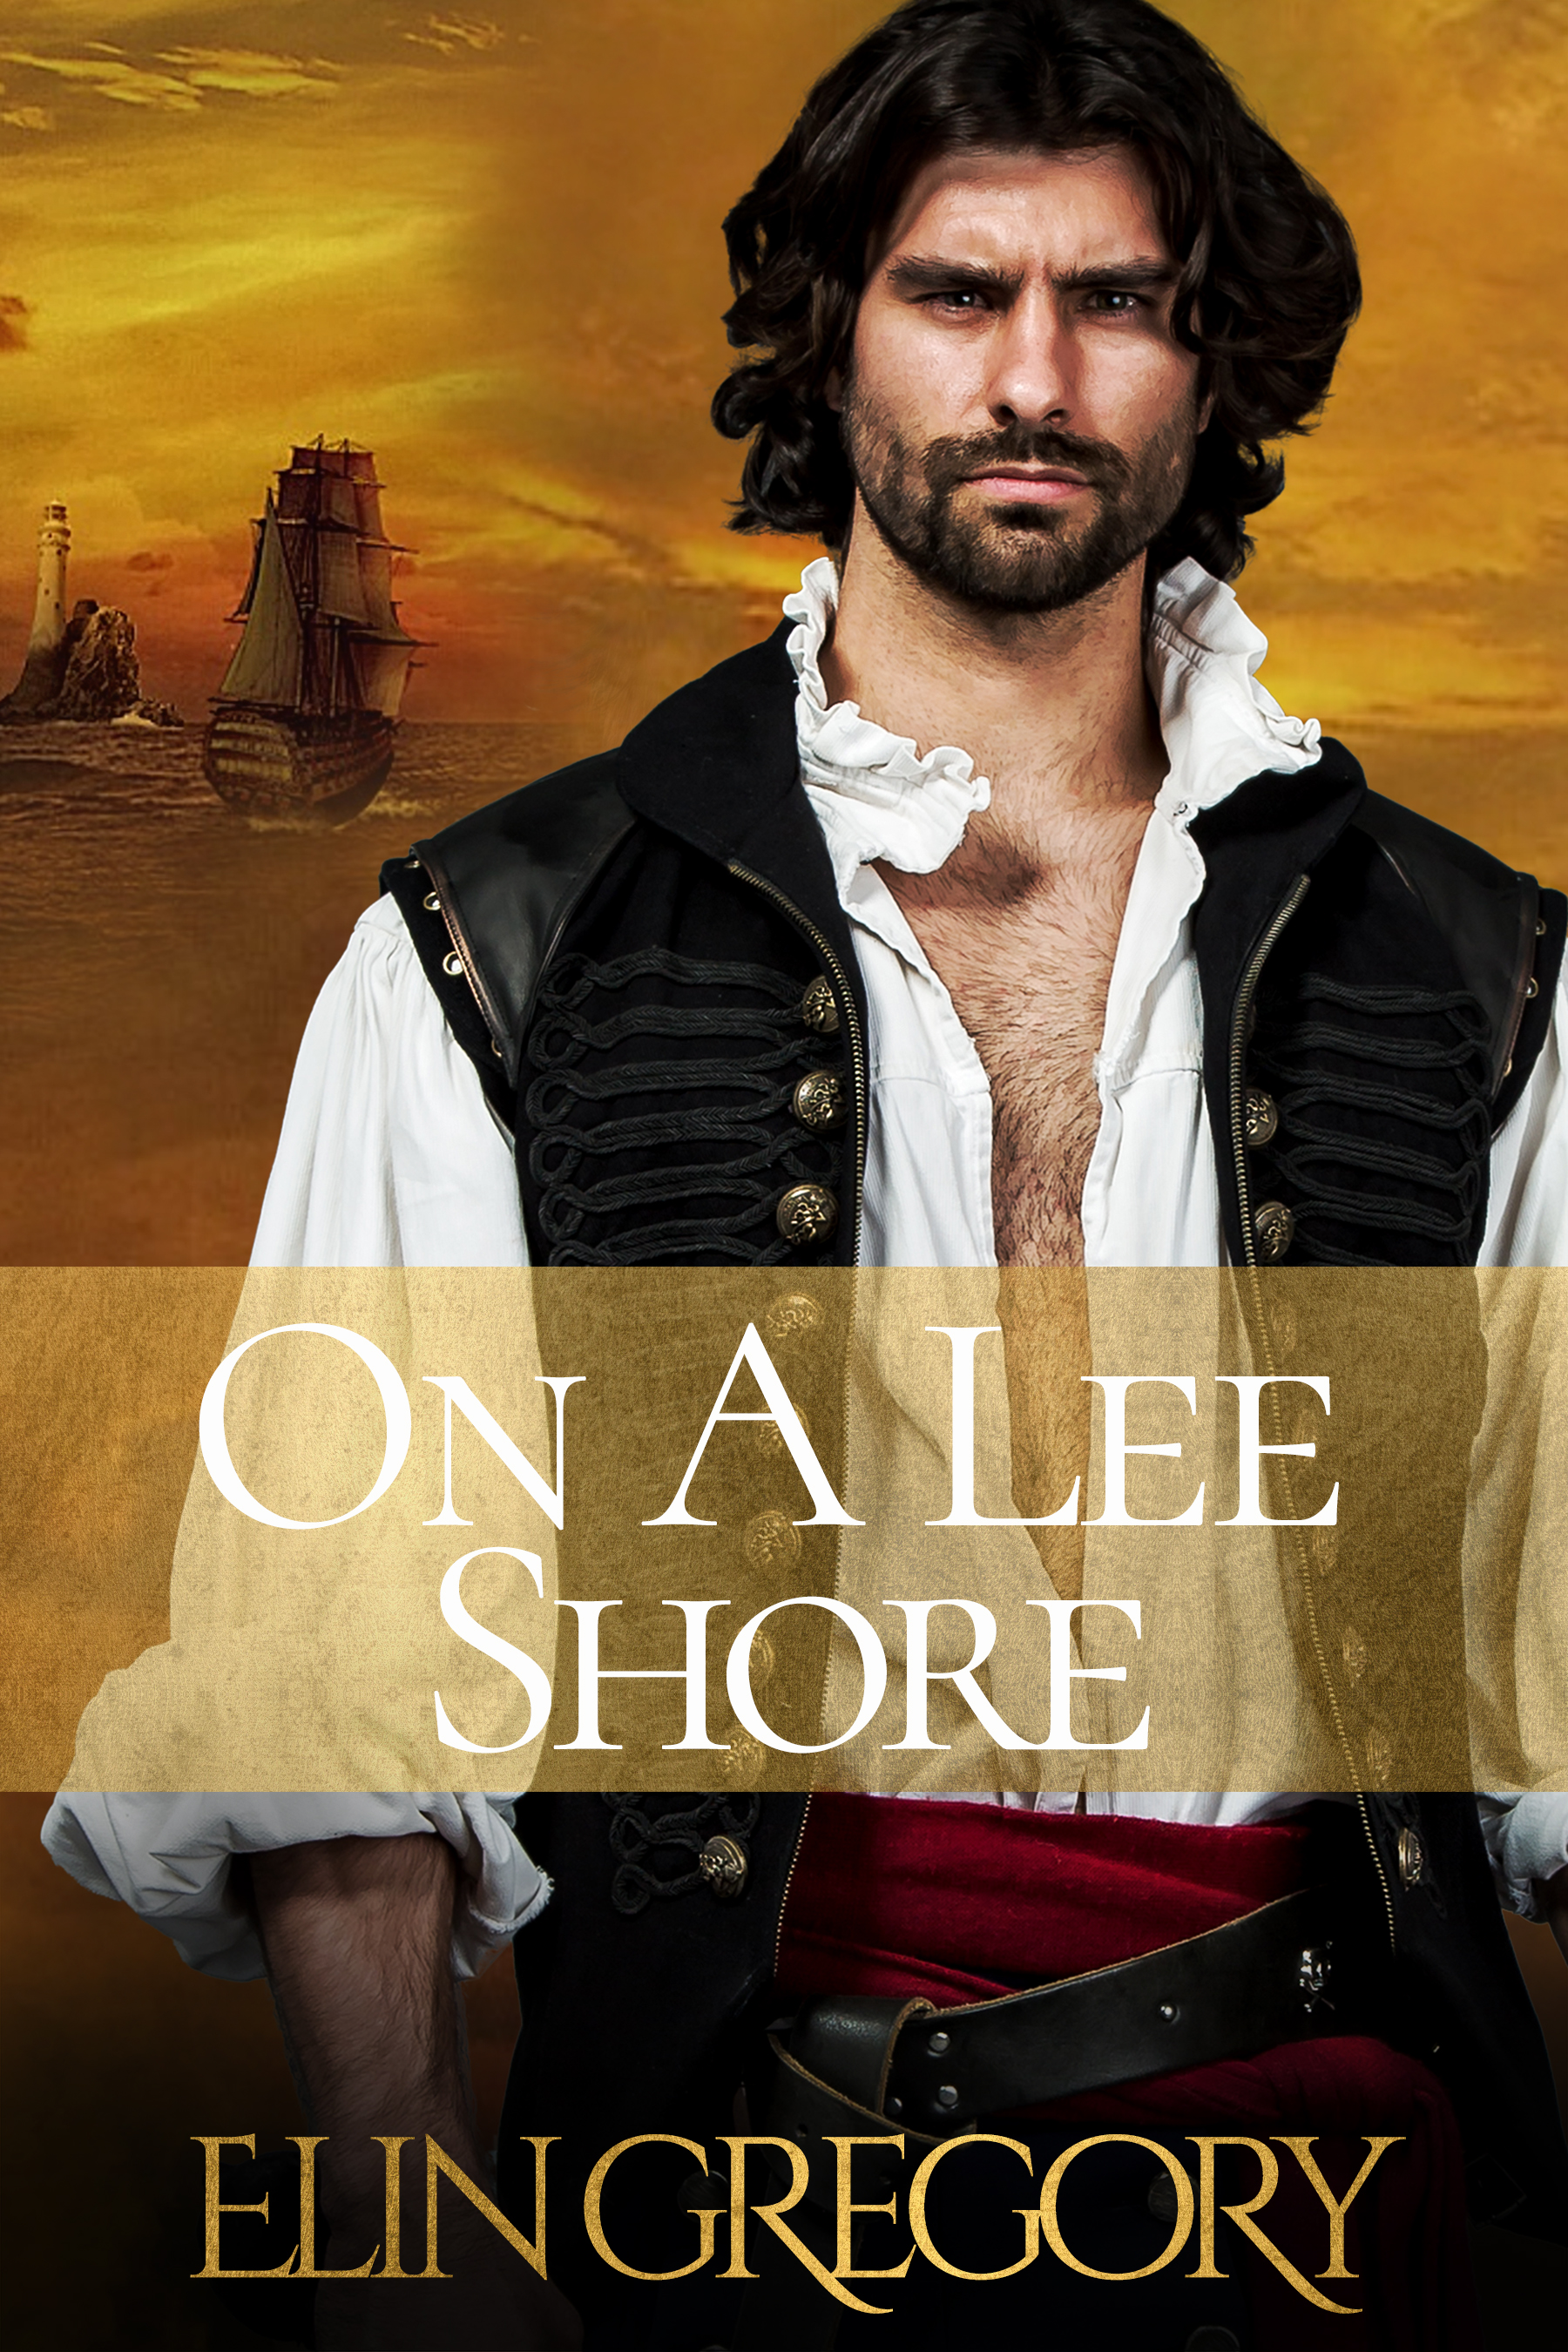 book cover showing pirate and ship